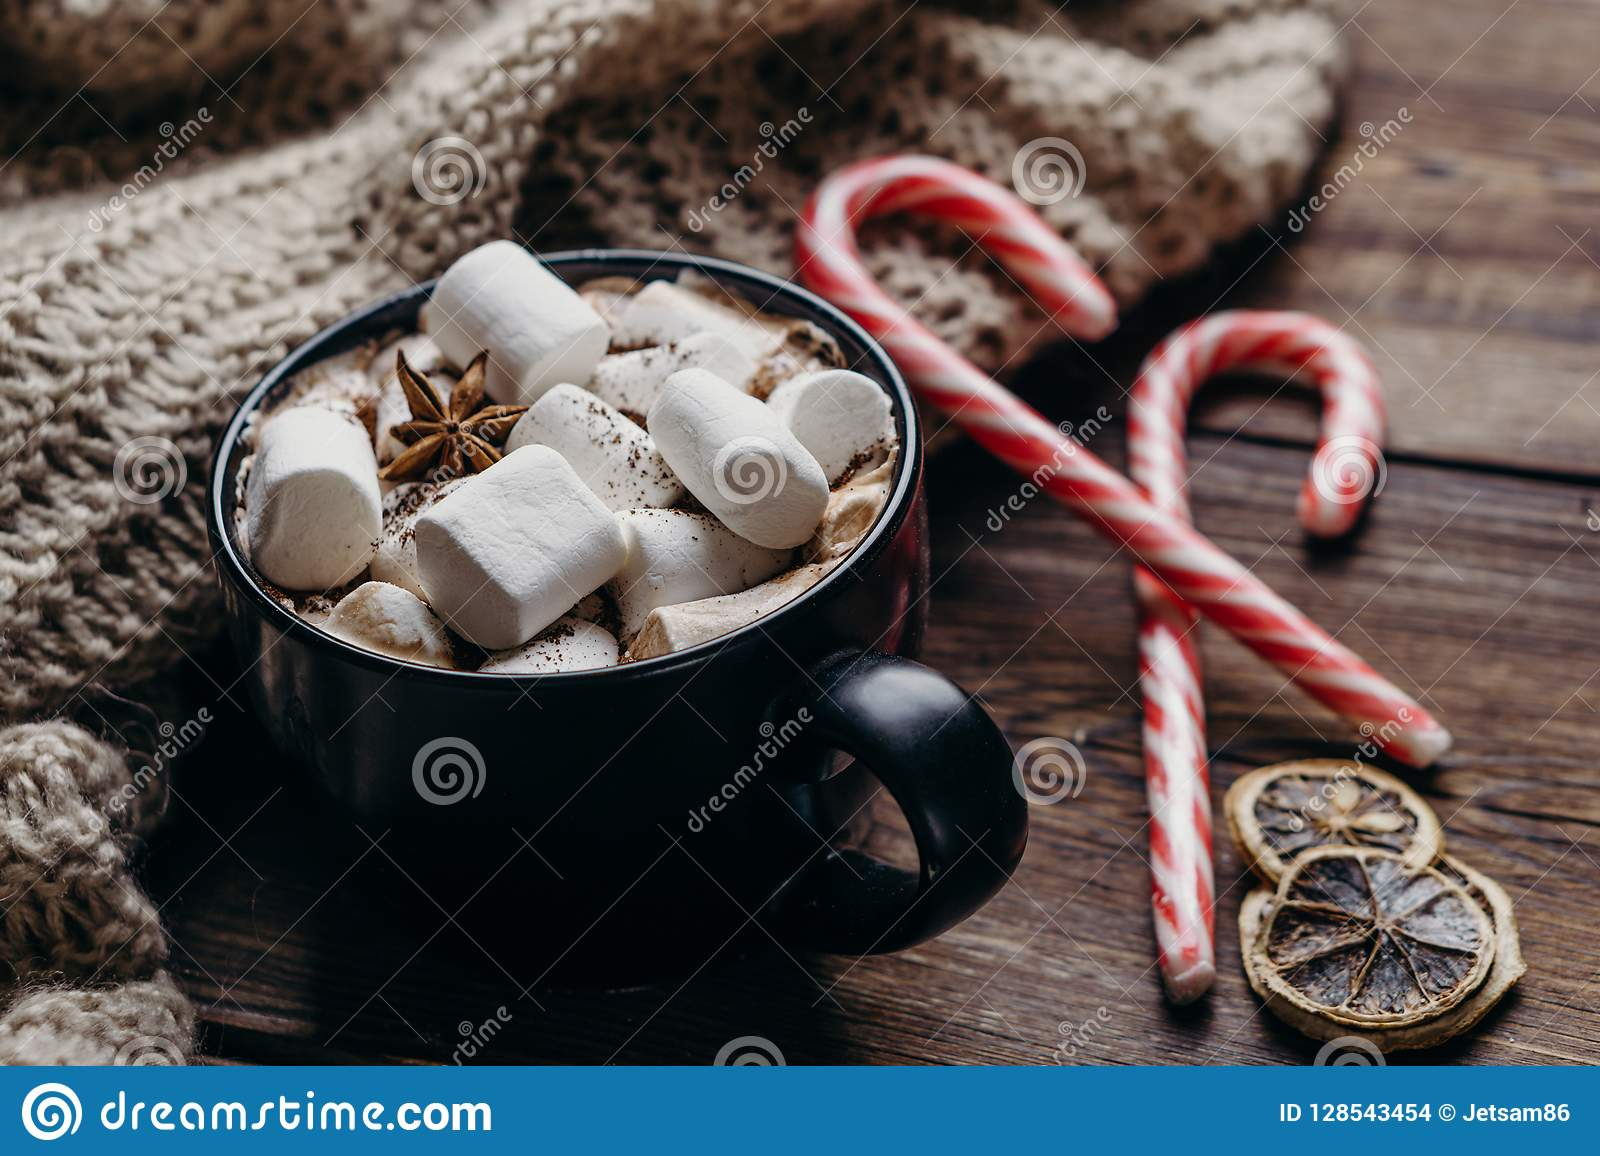 Christmas background with hot chocolate and sweets